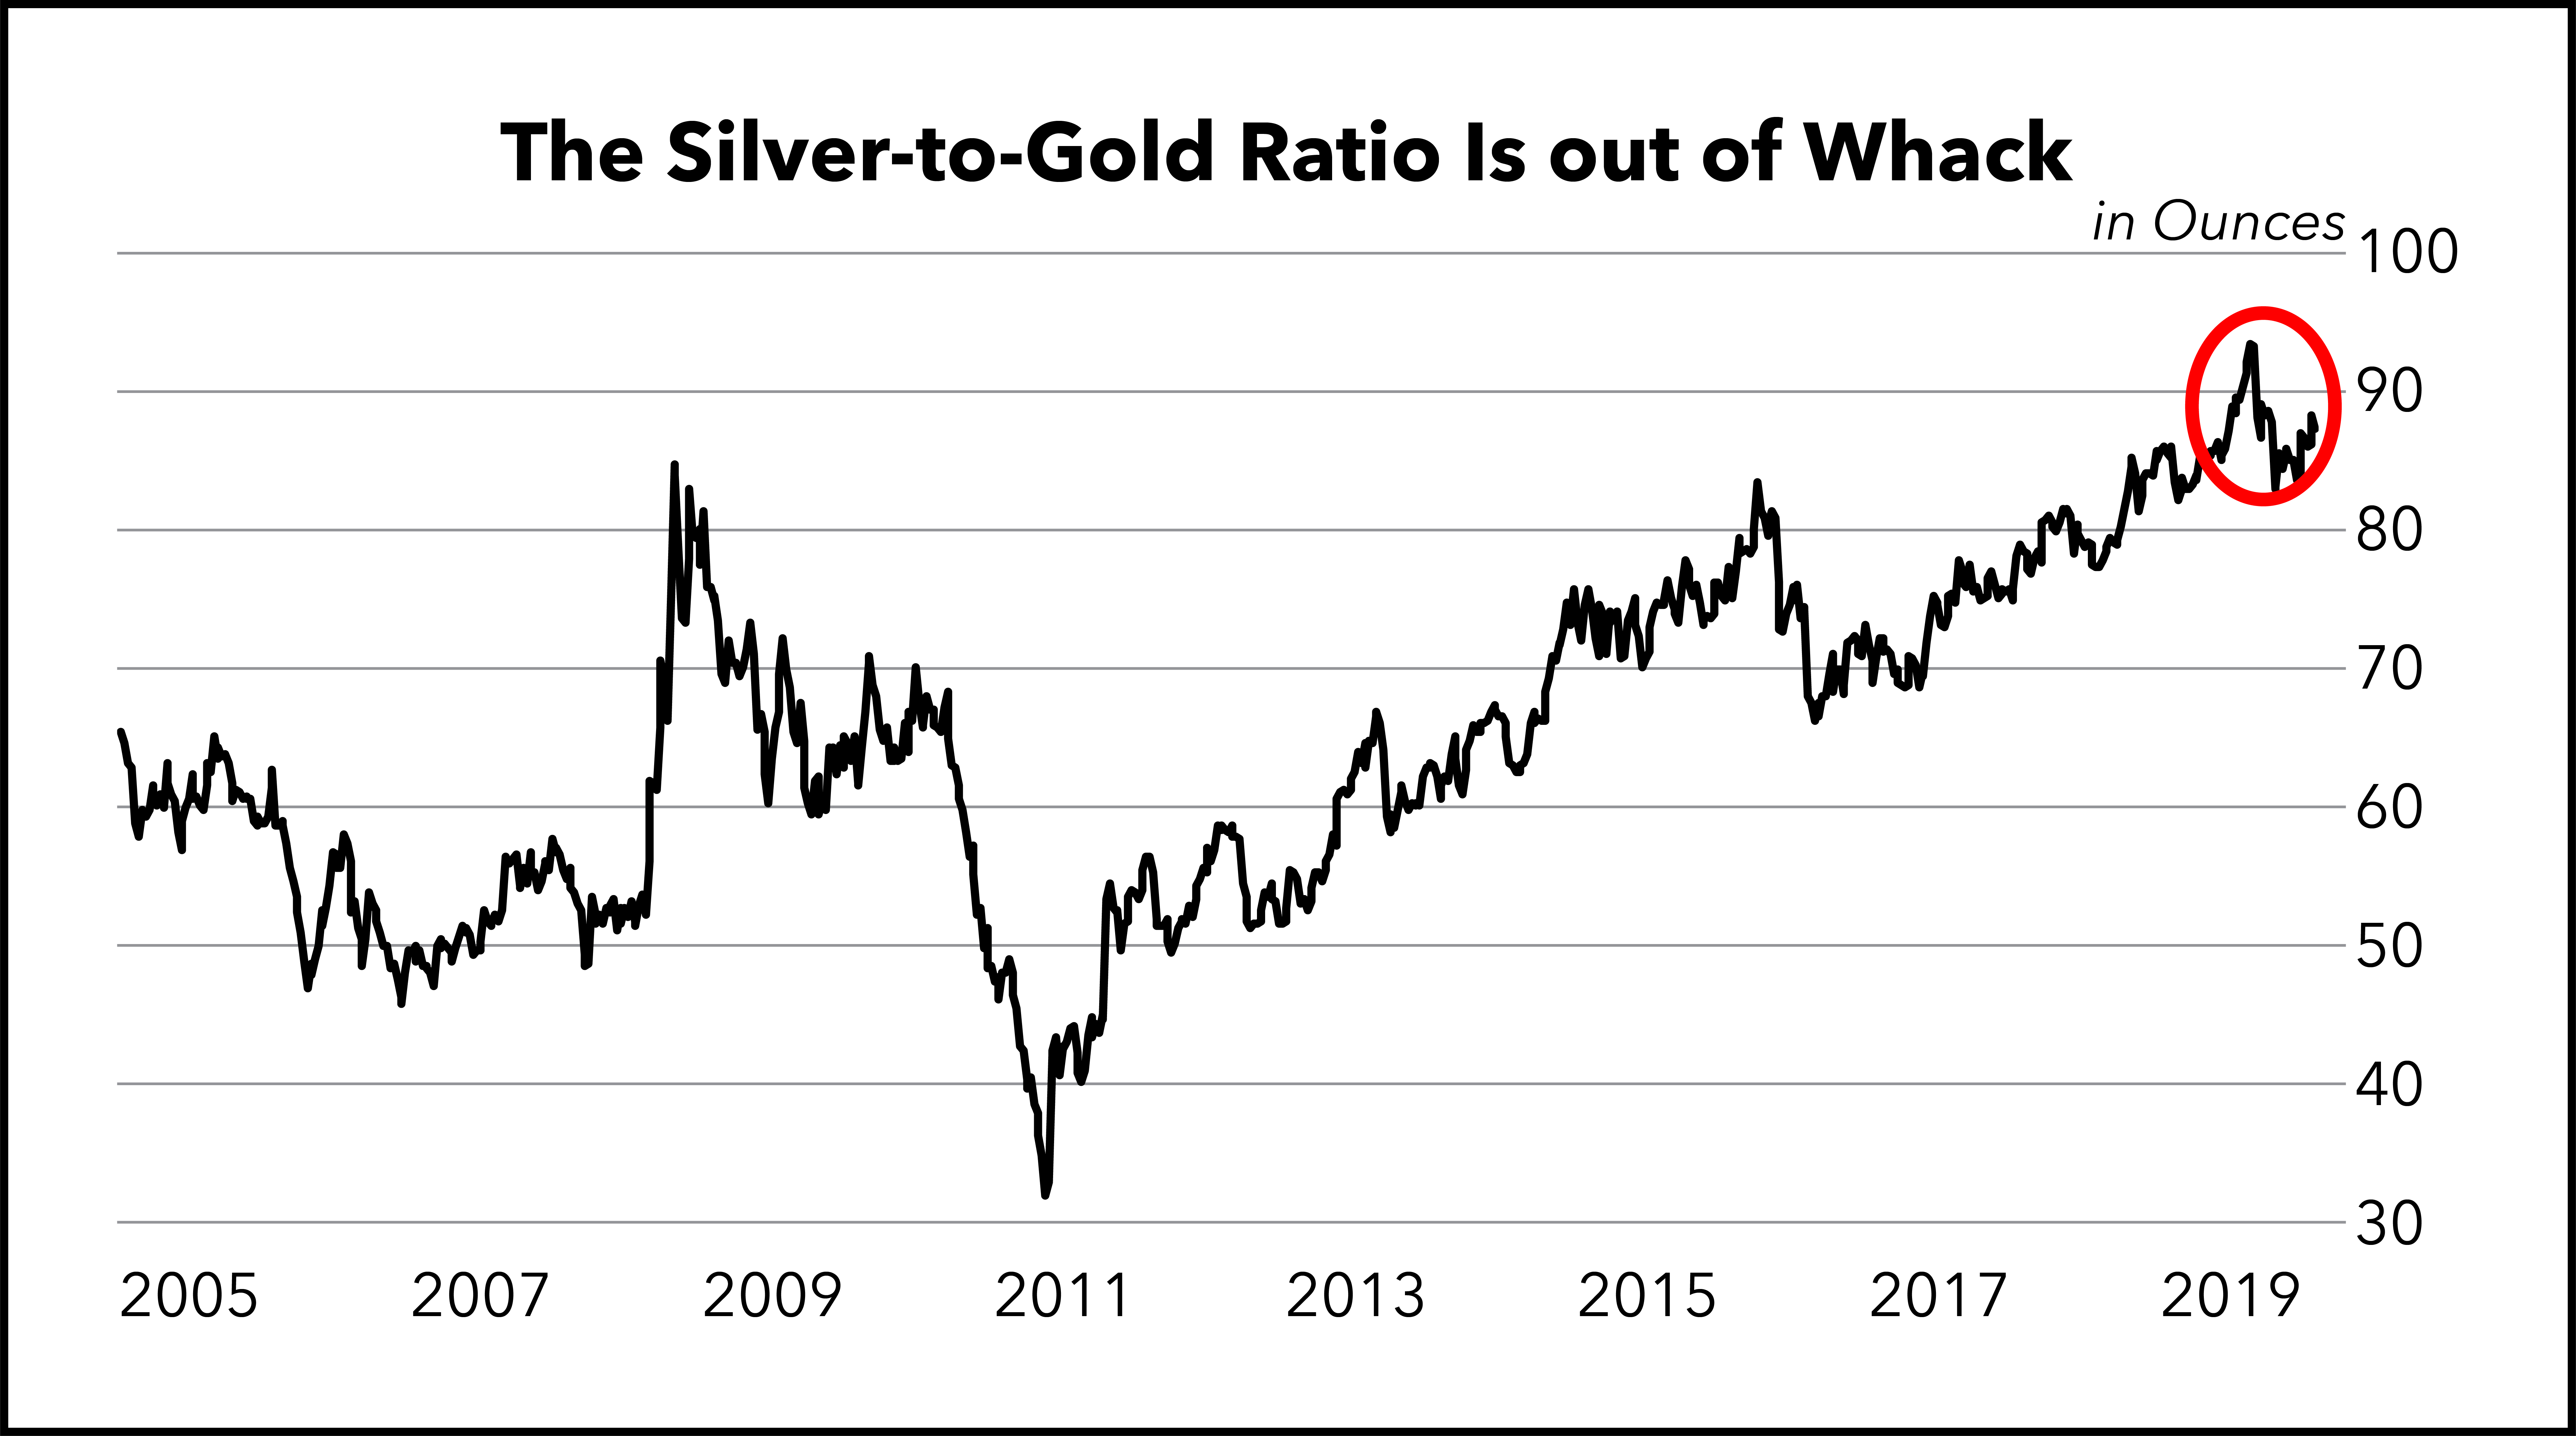 Silver to Gold Ratio 2005-2019